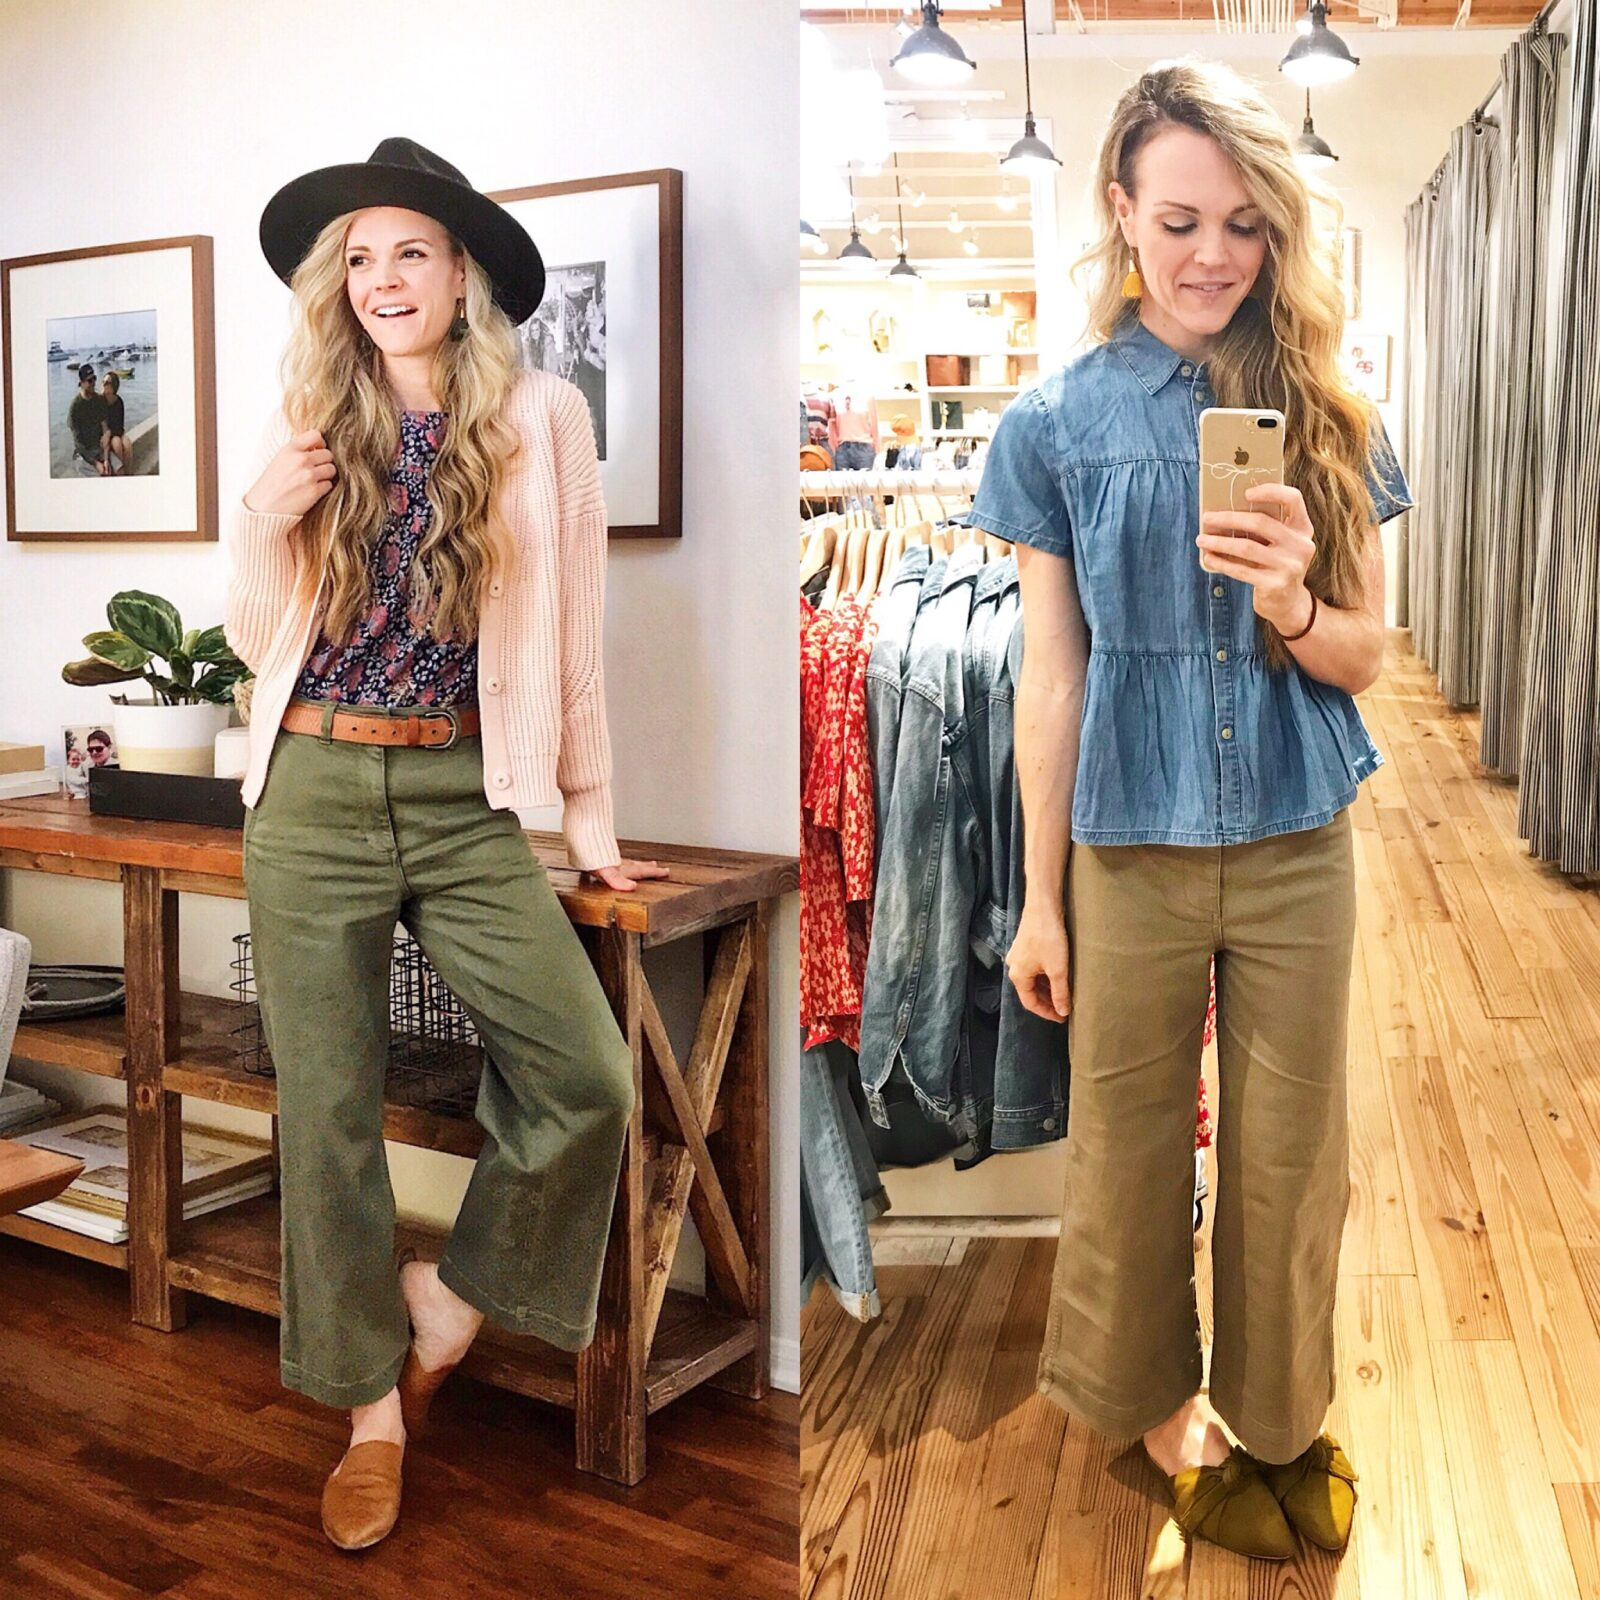 47bb6e05ab0ca after receiving quite a few direct messages questions regarding the  differences between everlane s wide-leg cropped pant and madewell s similar  version